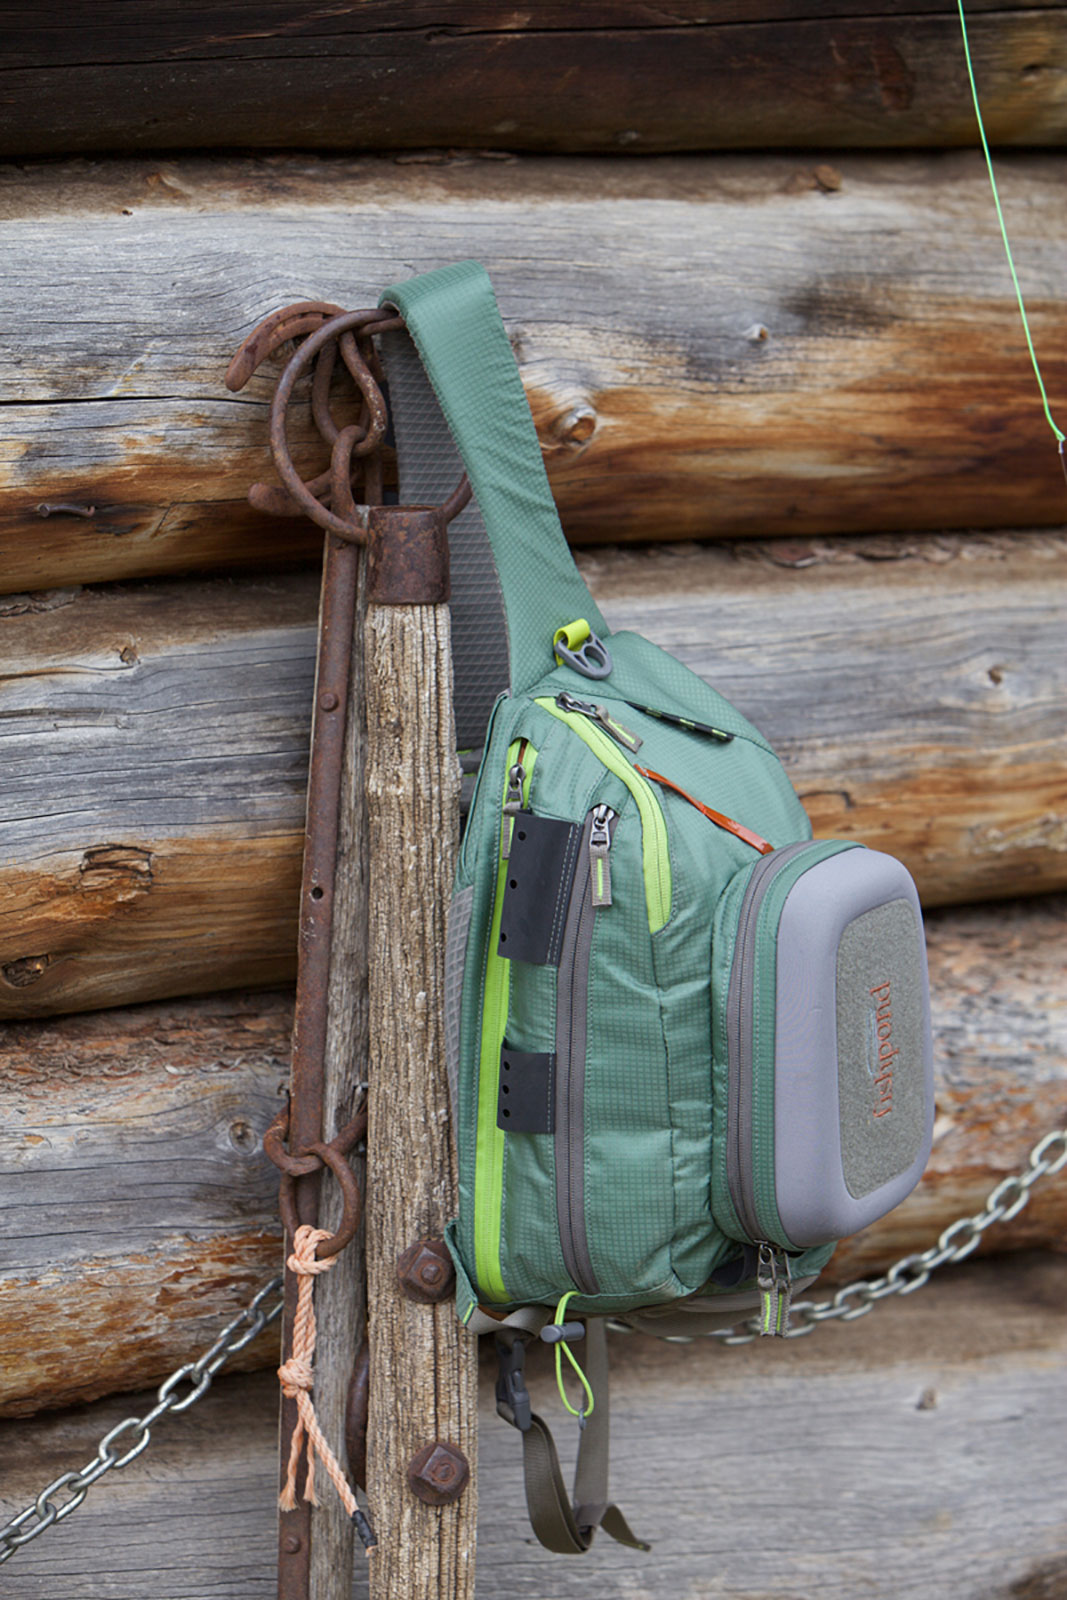 Fishpond summit sling fly fishing pack hands free gear for Free fishing stuff